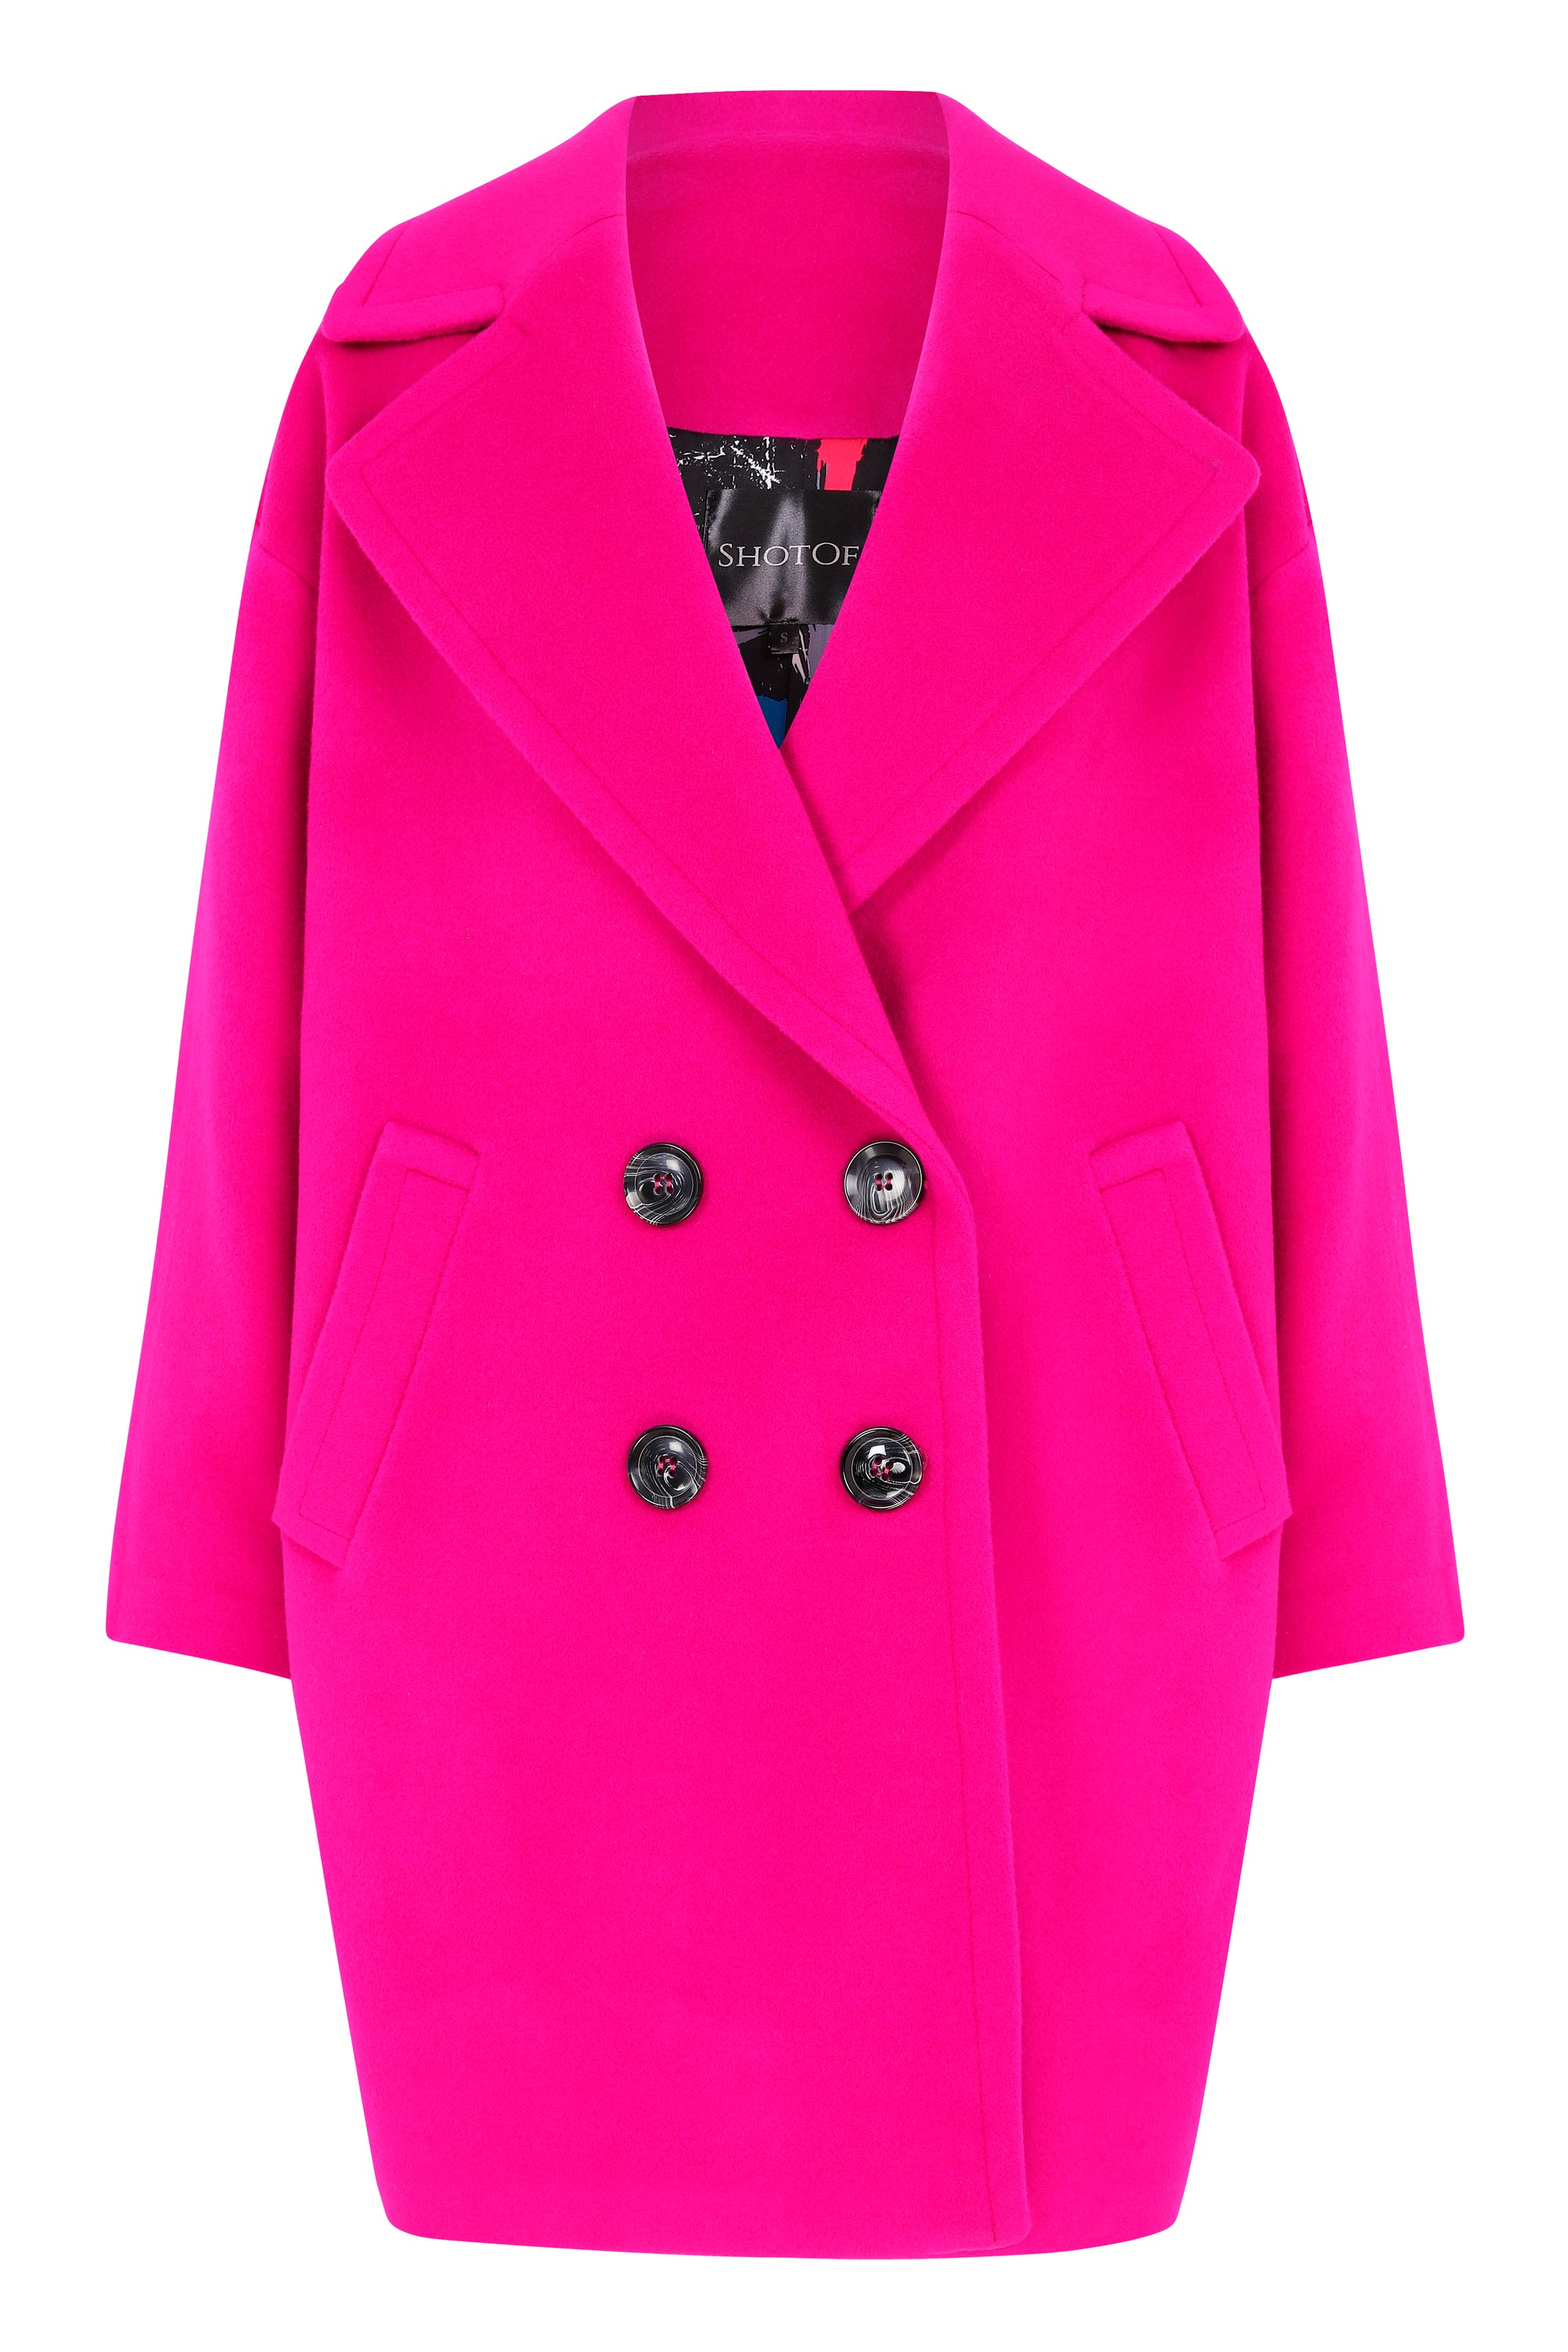 Mori Rose Cole Cashmere & Wool Coat - Shotof